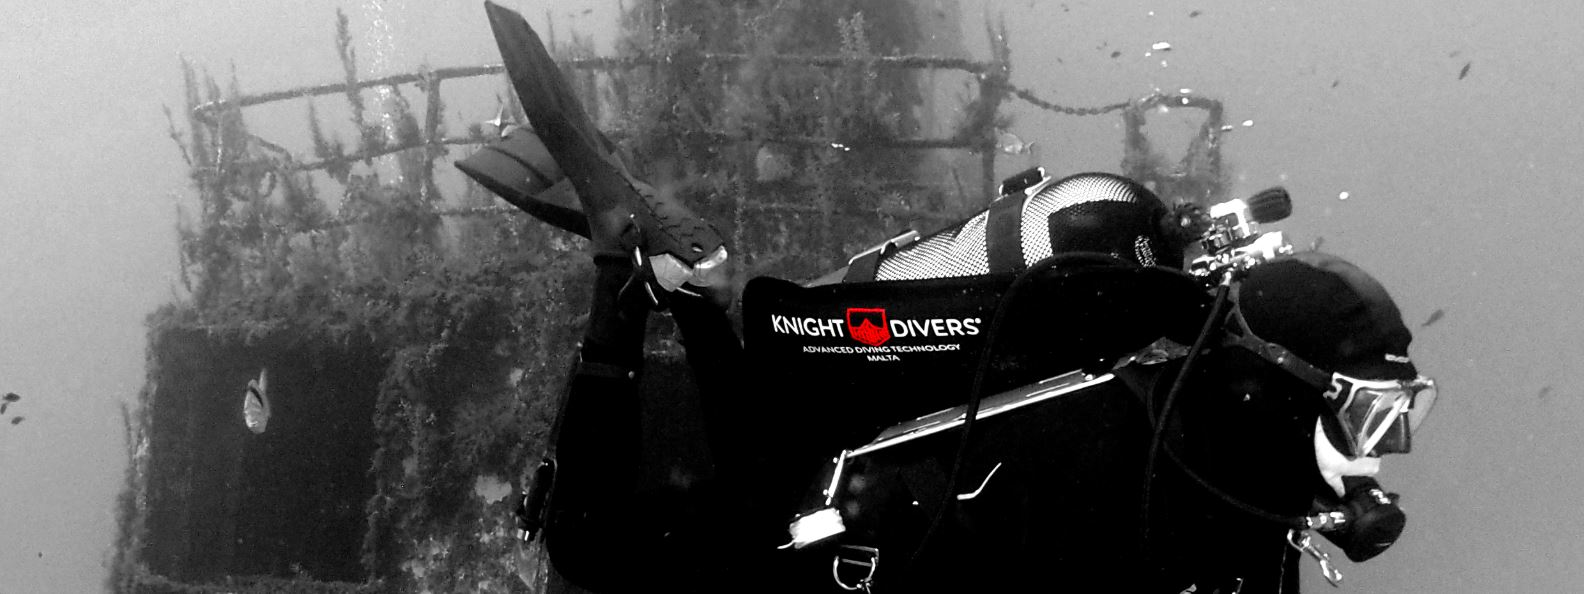 Knight Divers